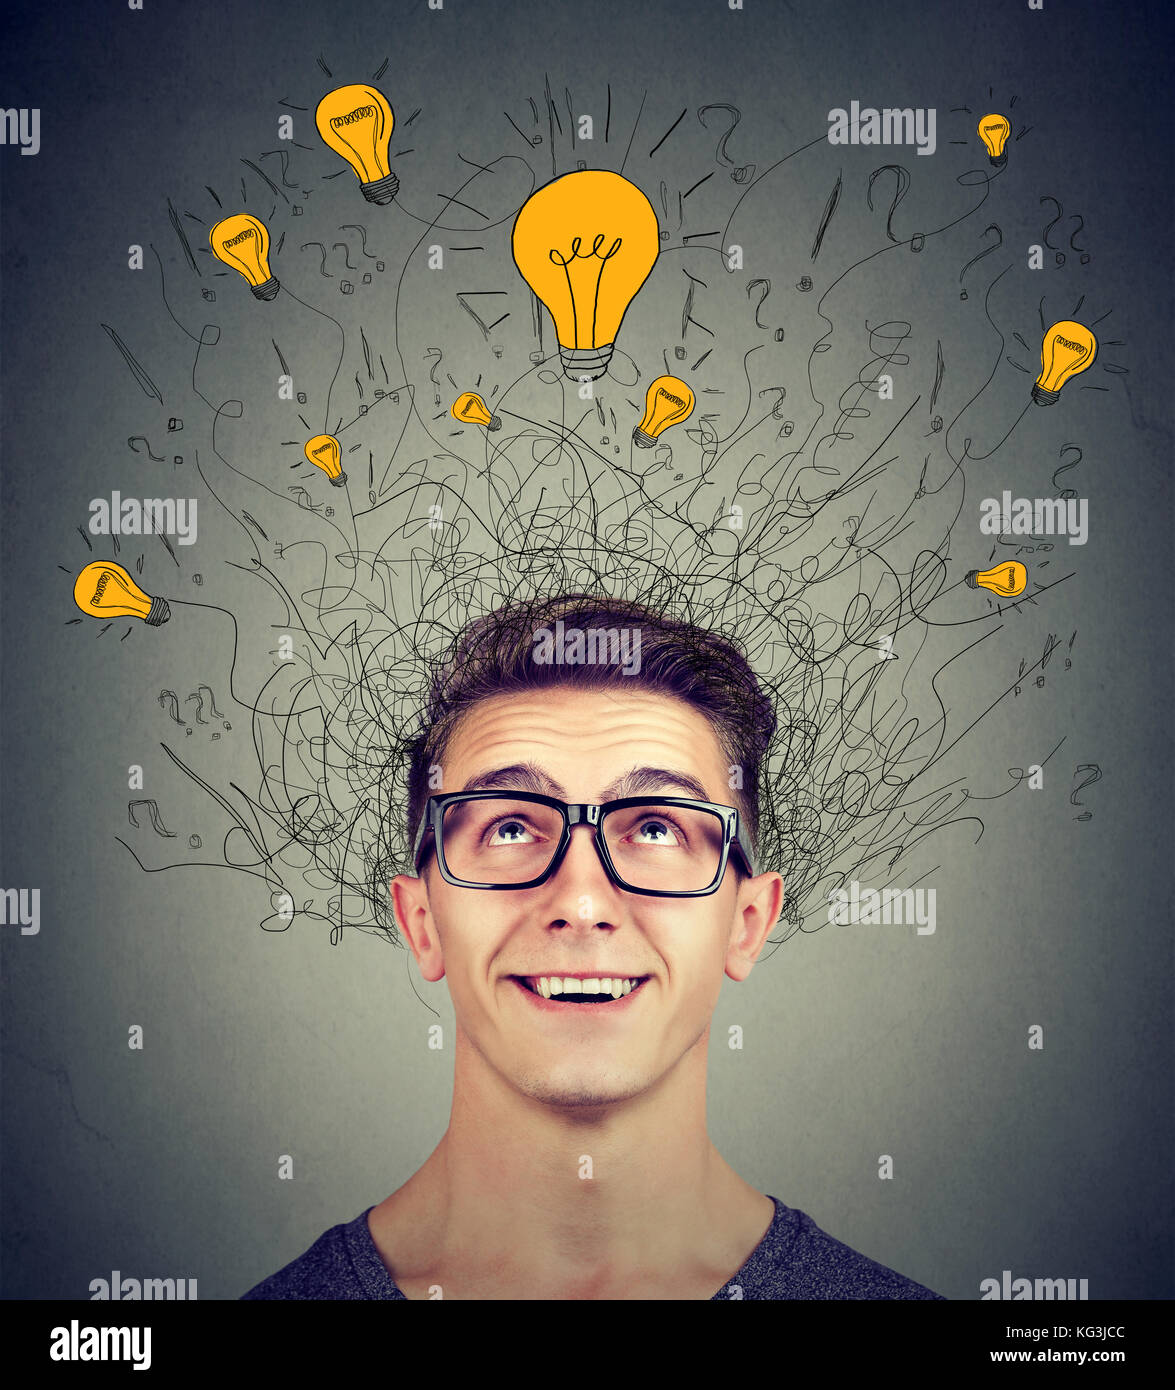 Brain connections. Excited man looking up at many ideas light bulbs above head isolated on gray wall background. - Stock Image